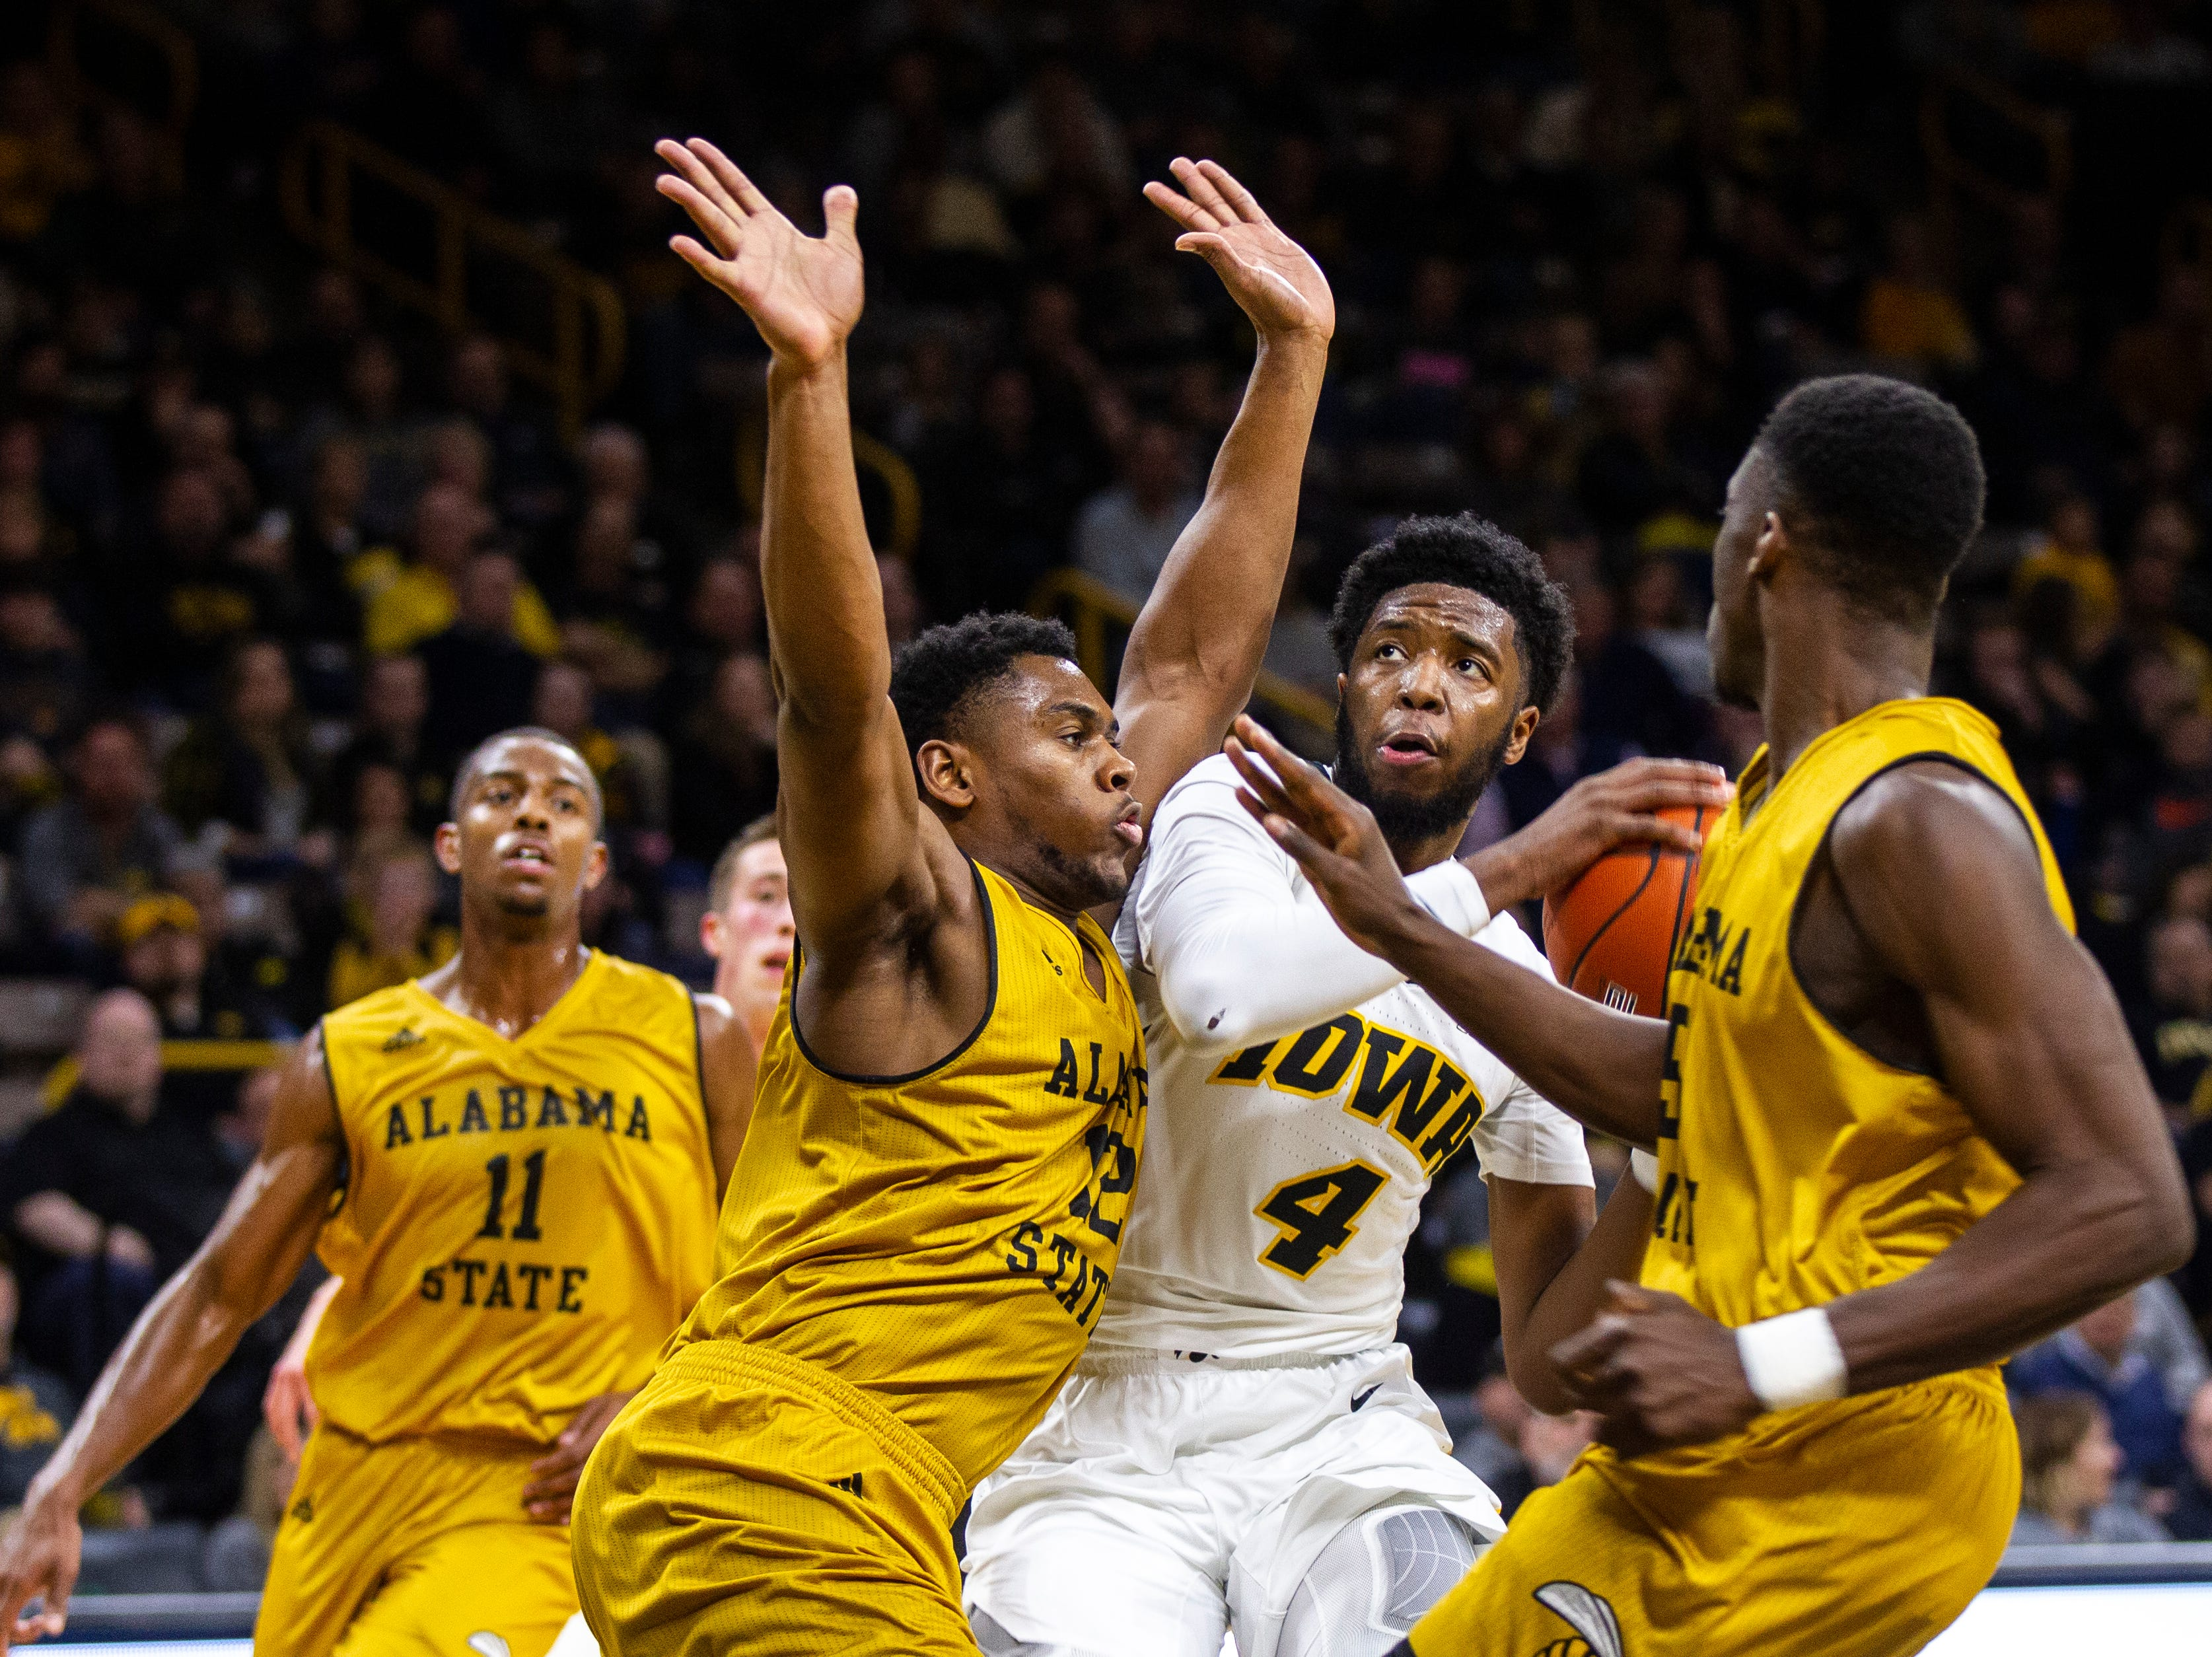 Iowa guard Isaiah Moss (4) attempts a shot in the paint while being defended by Alabama State's Reginald Gee (12) during an NCAA men's basketball game on Wednesday, Nov. 21, 2018, at Carver-Hawkeye Arena in Iowa City.